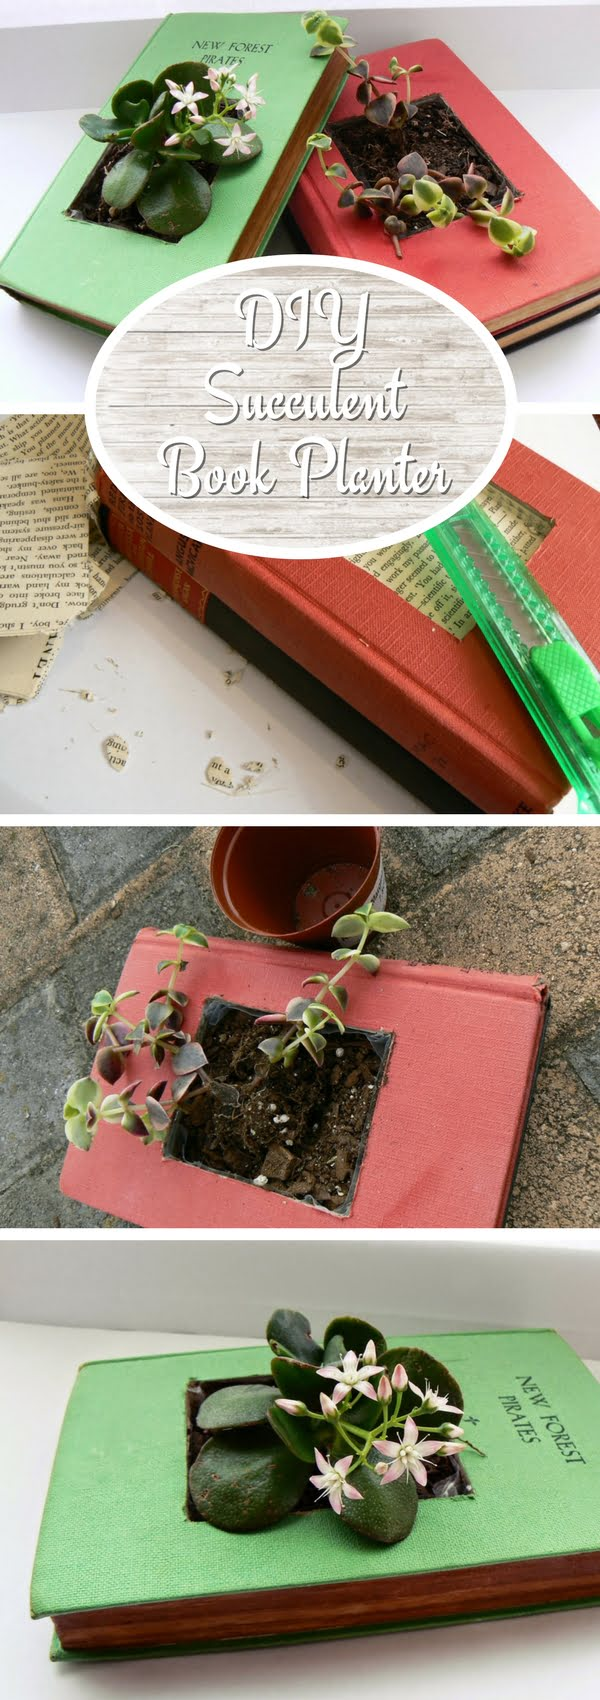 Check out how to make a DIY succulent book planter